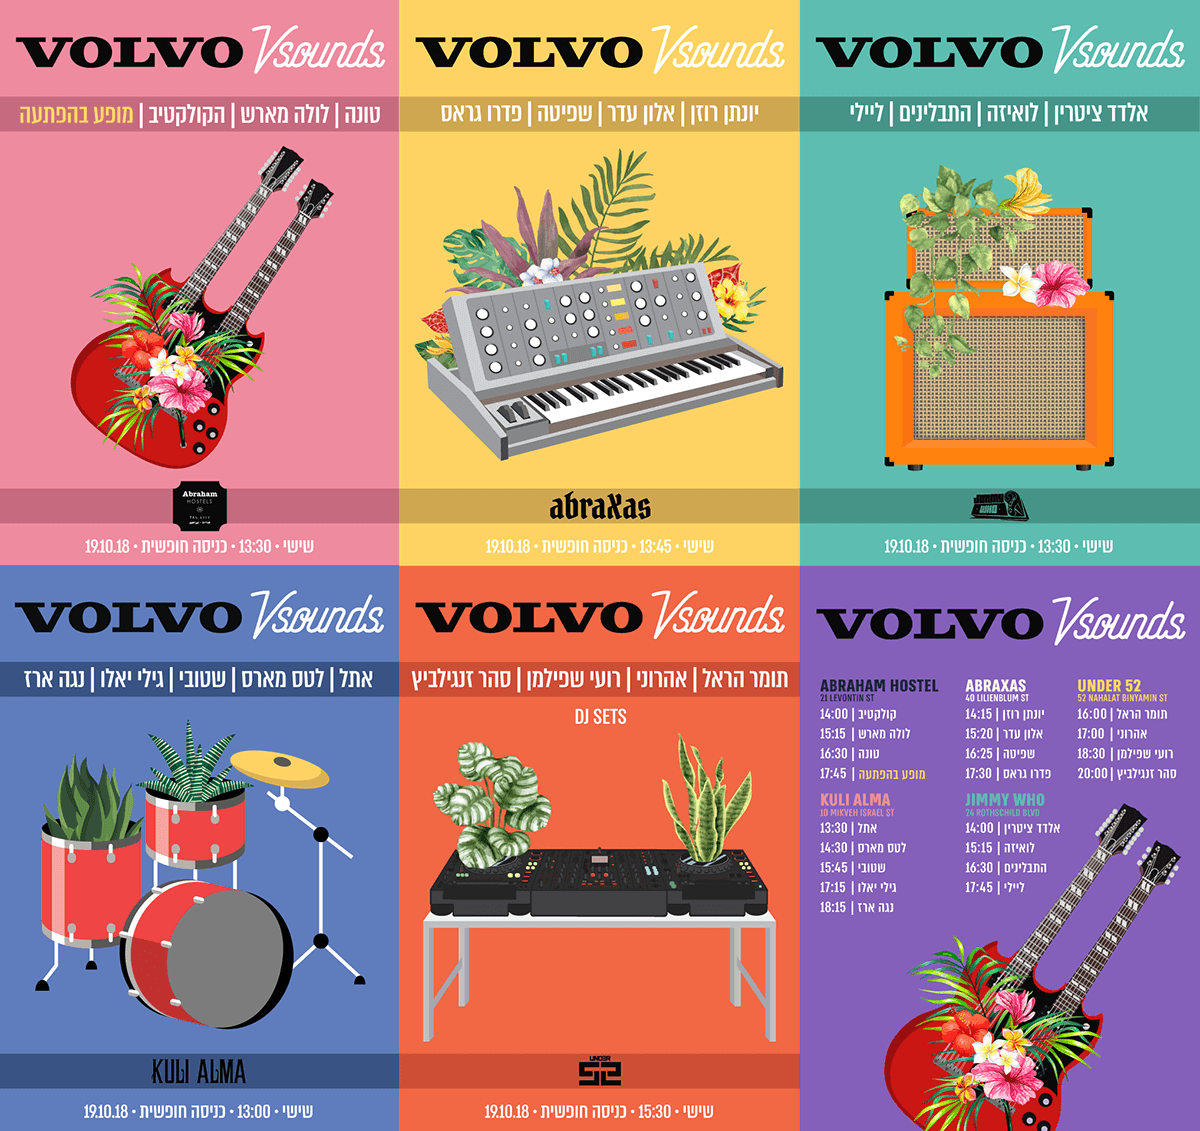 Vsounds 2018 Posters